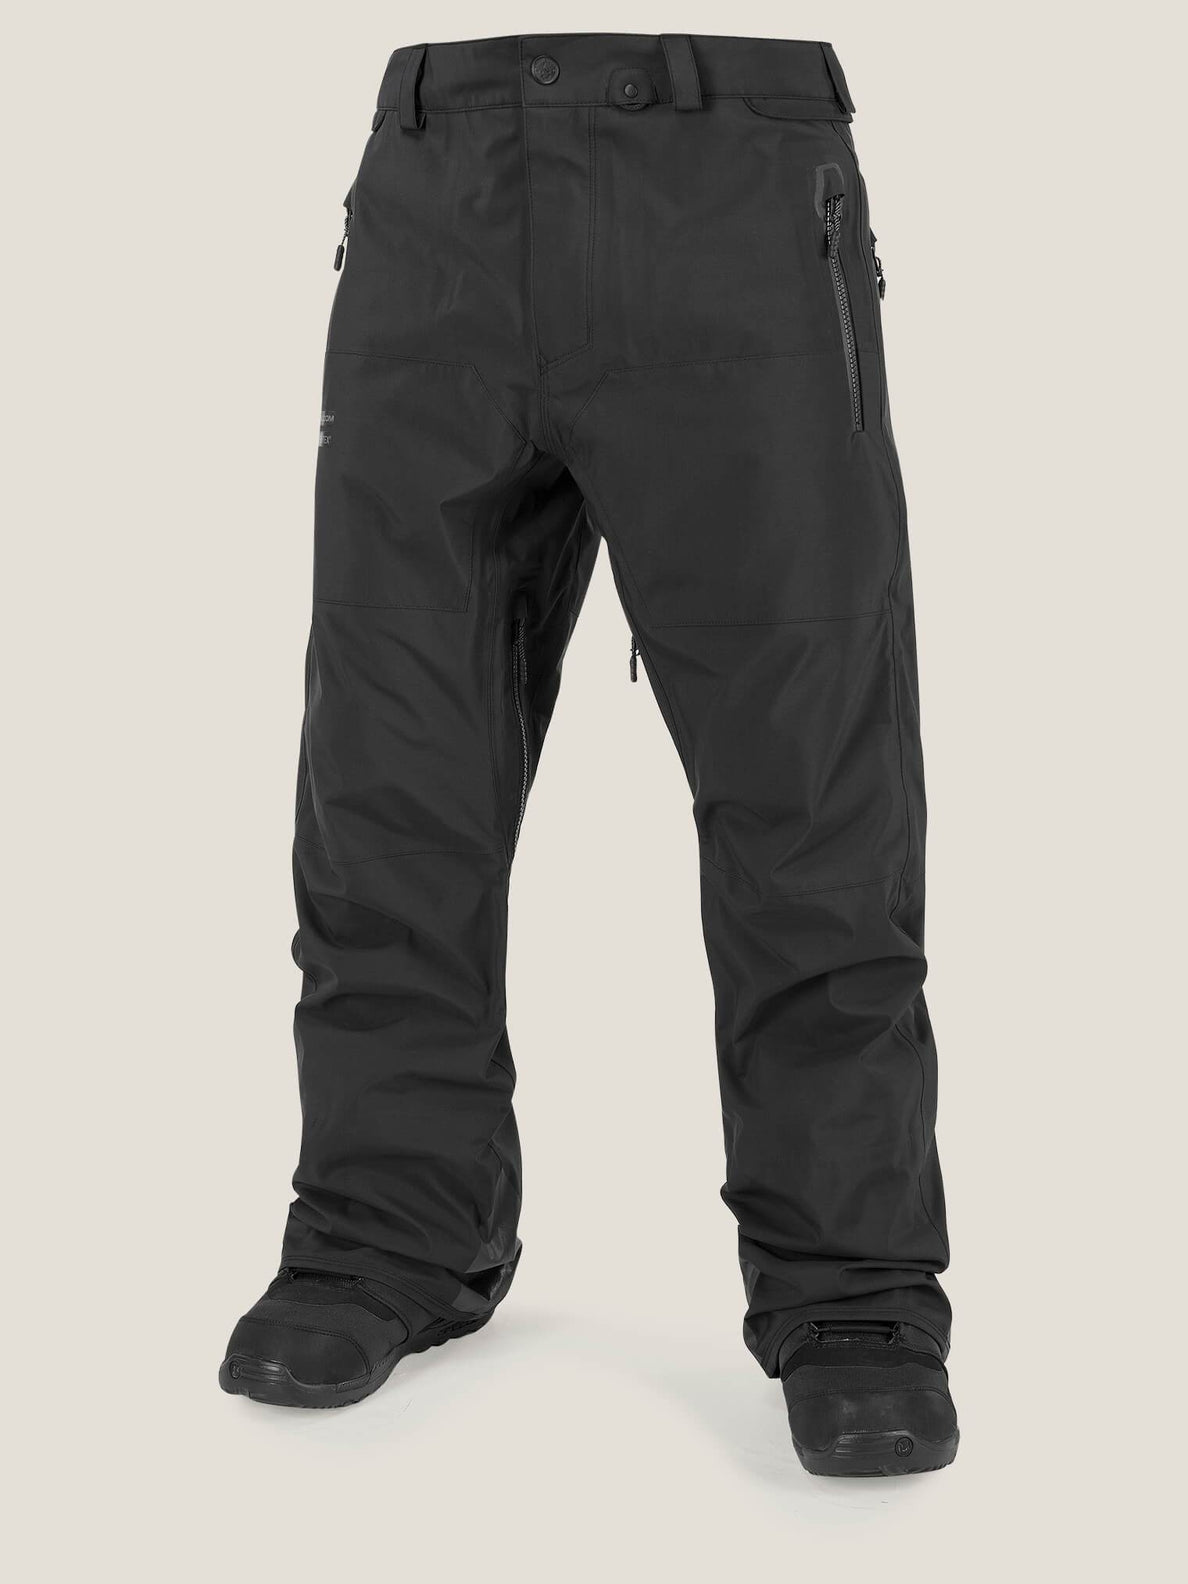 Hose Guide Gore-Tex - Black